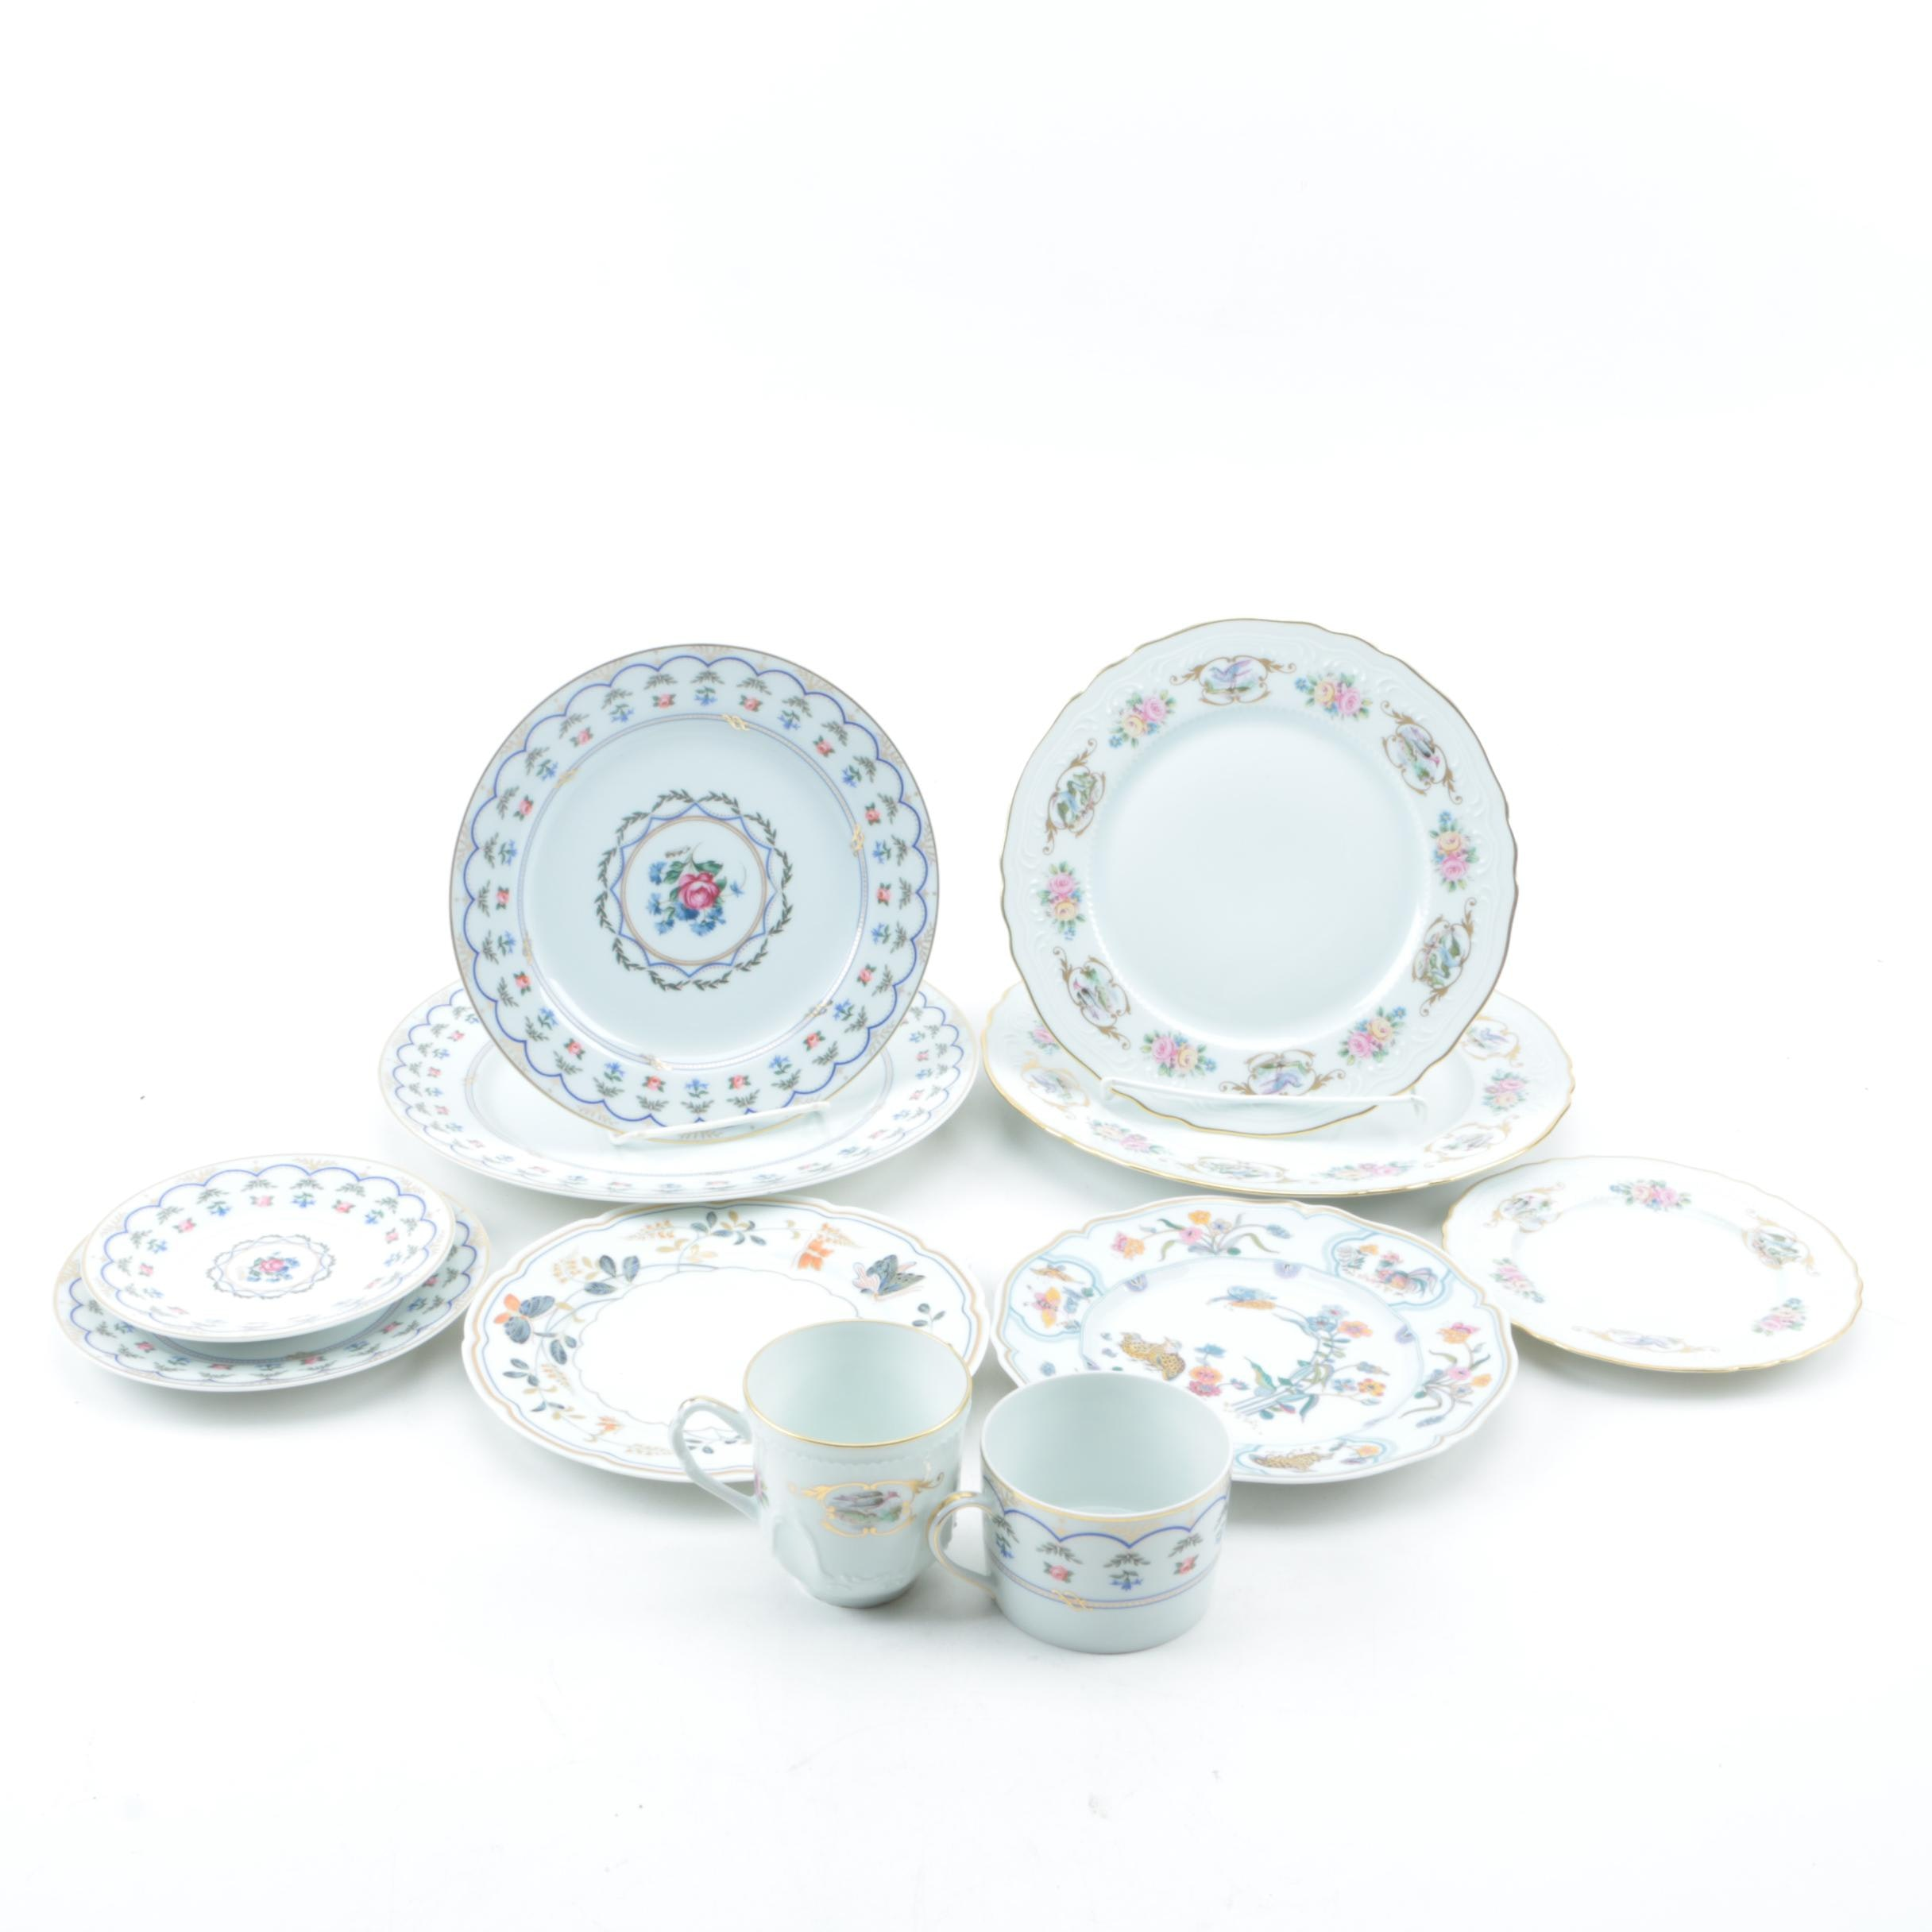 Ancienne Manufacture Royal Limoges Porcelain Tableware